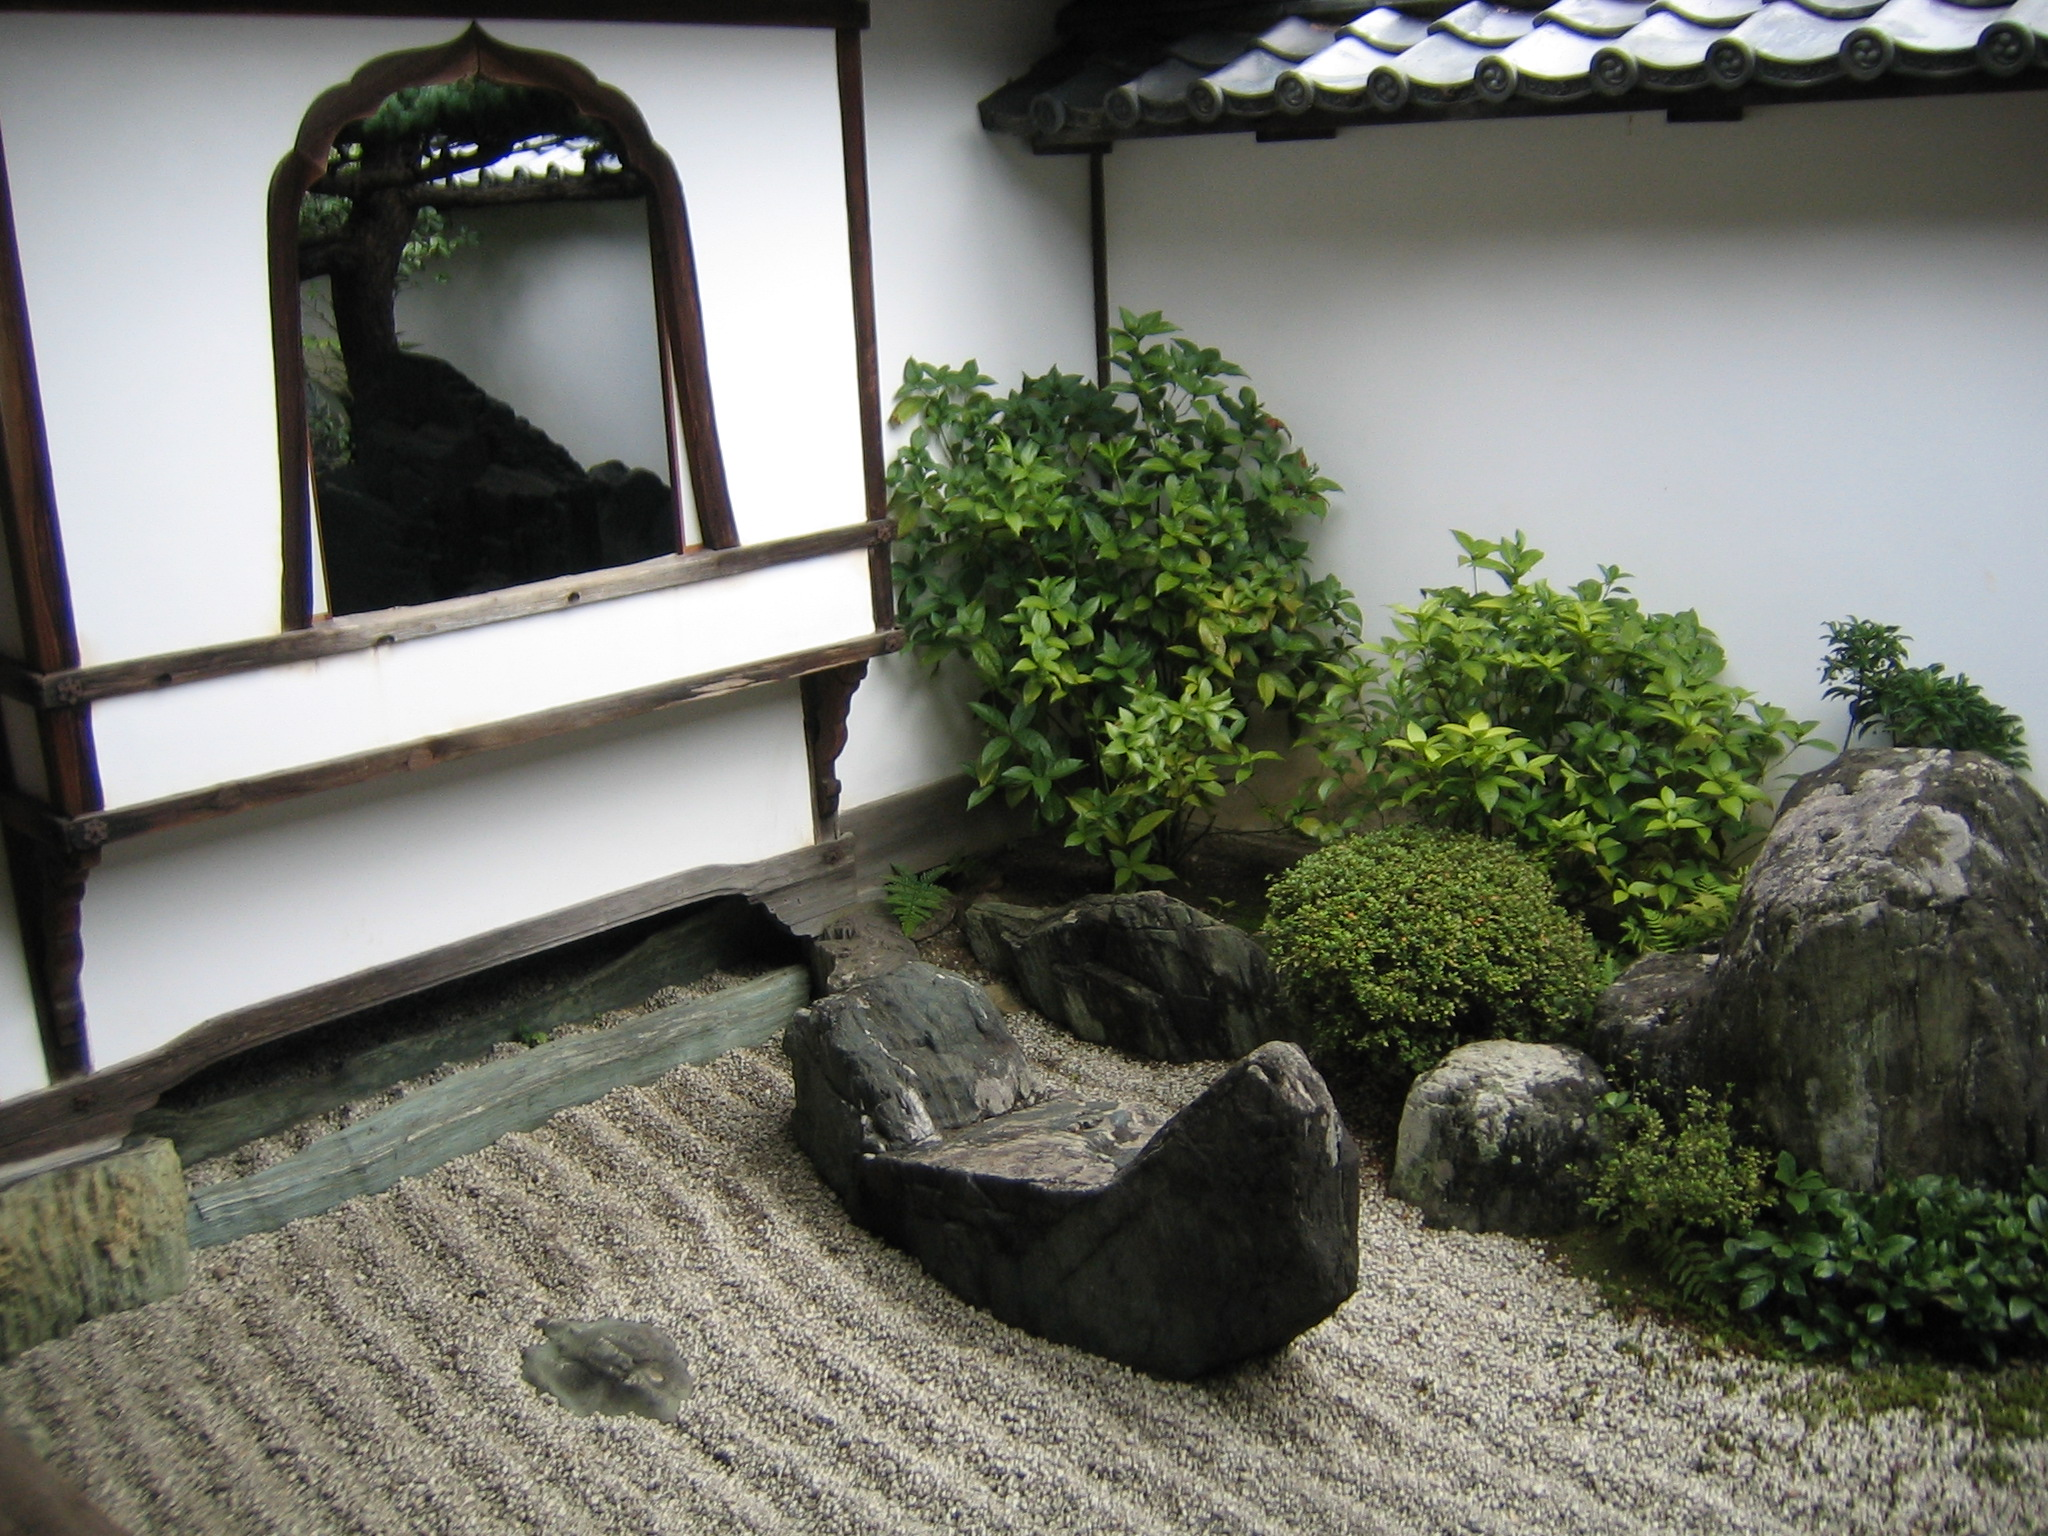 rock garden next to window